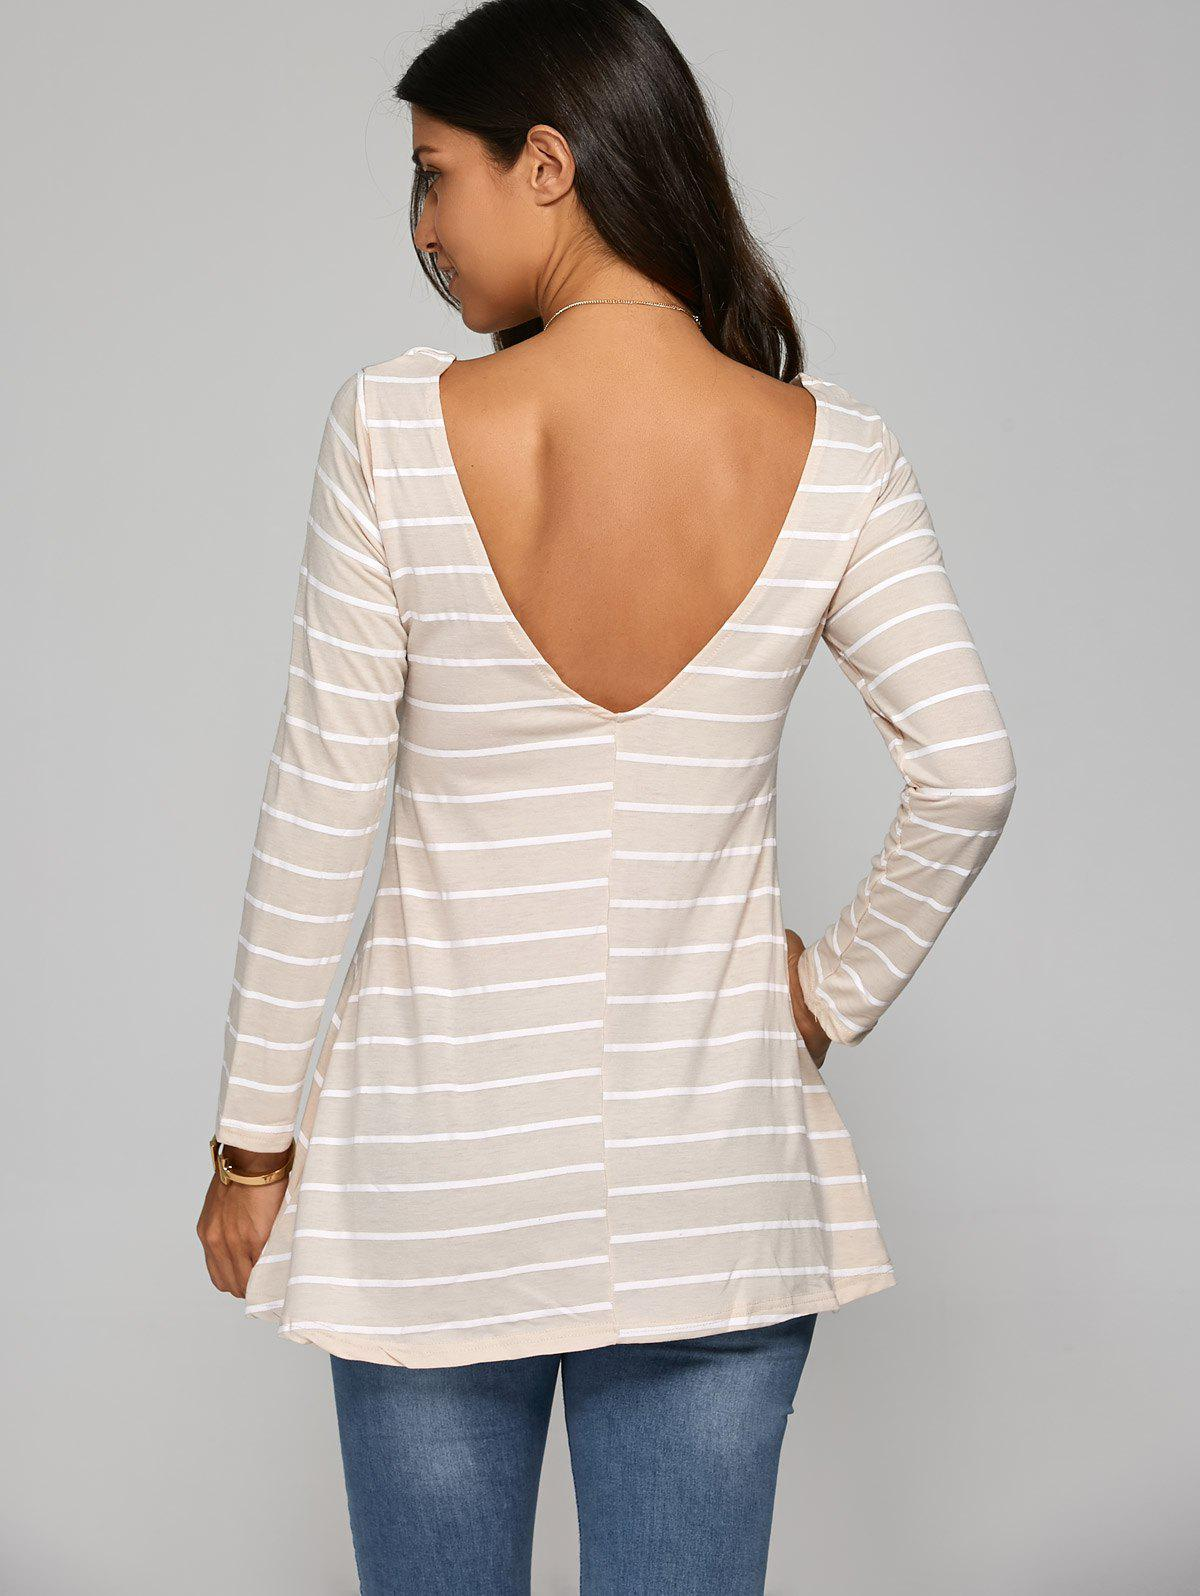 Striped Open Back T-Shirt hettich 4991 05